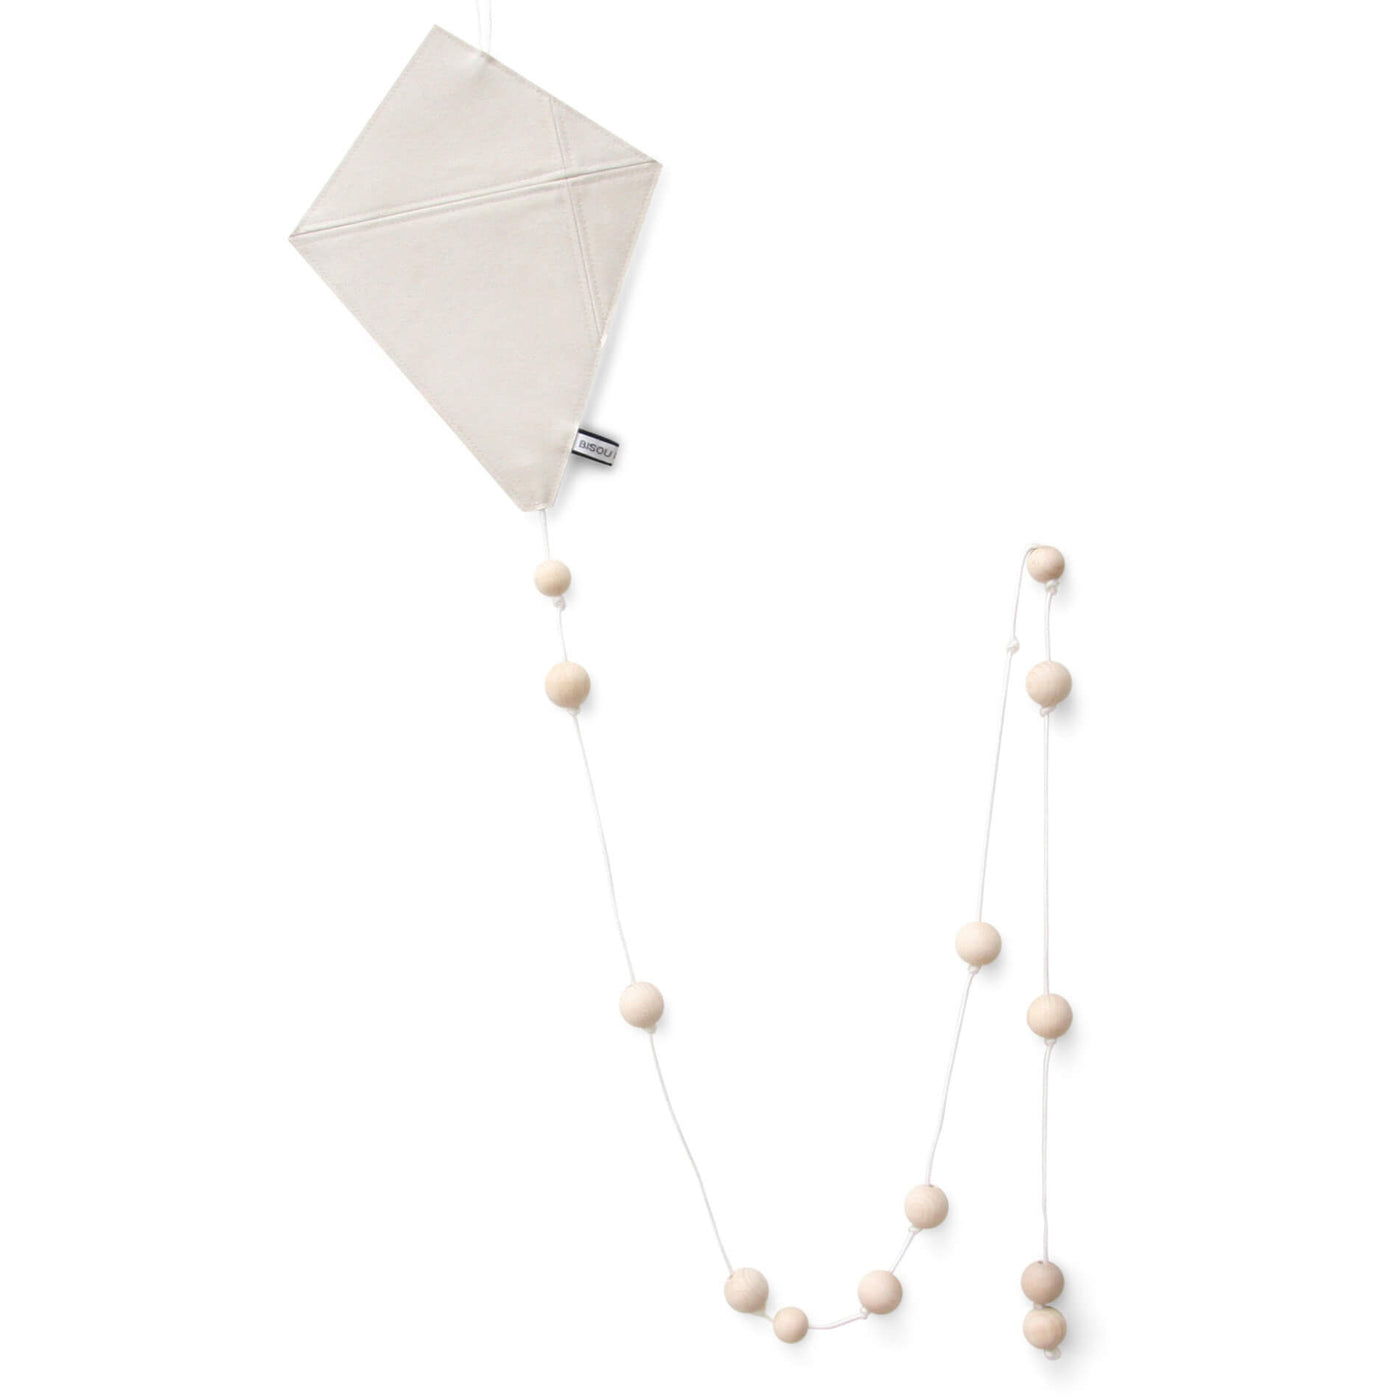 Kite Wall Decoration - White